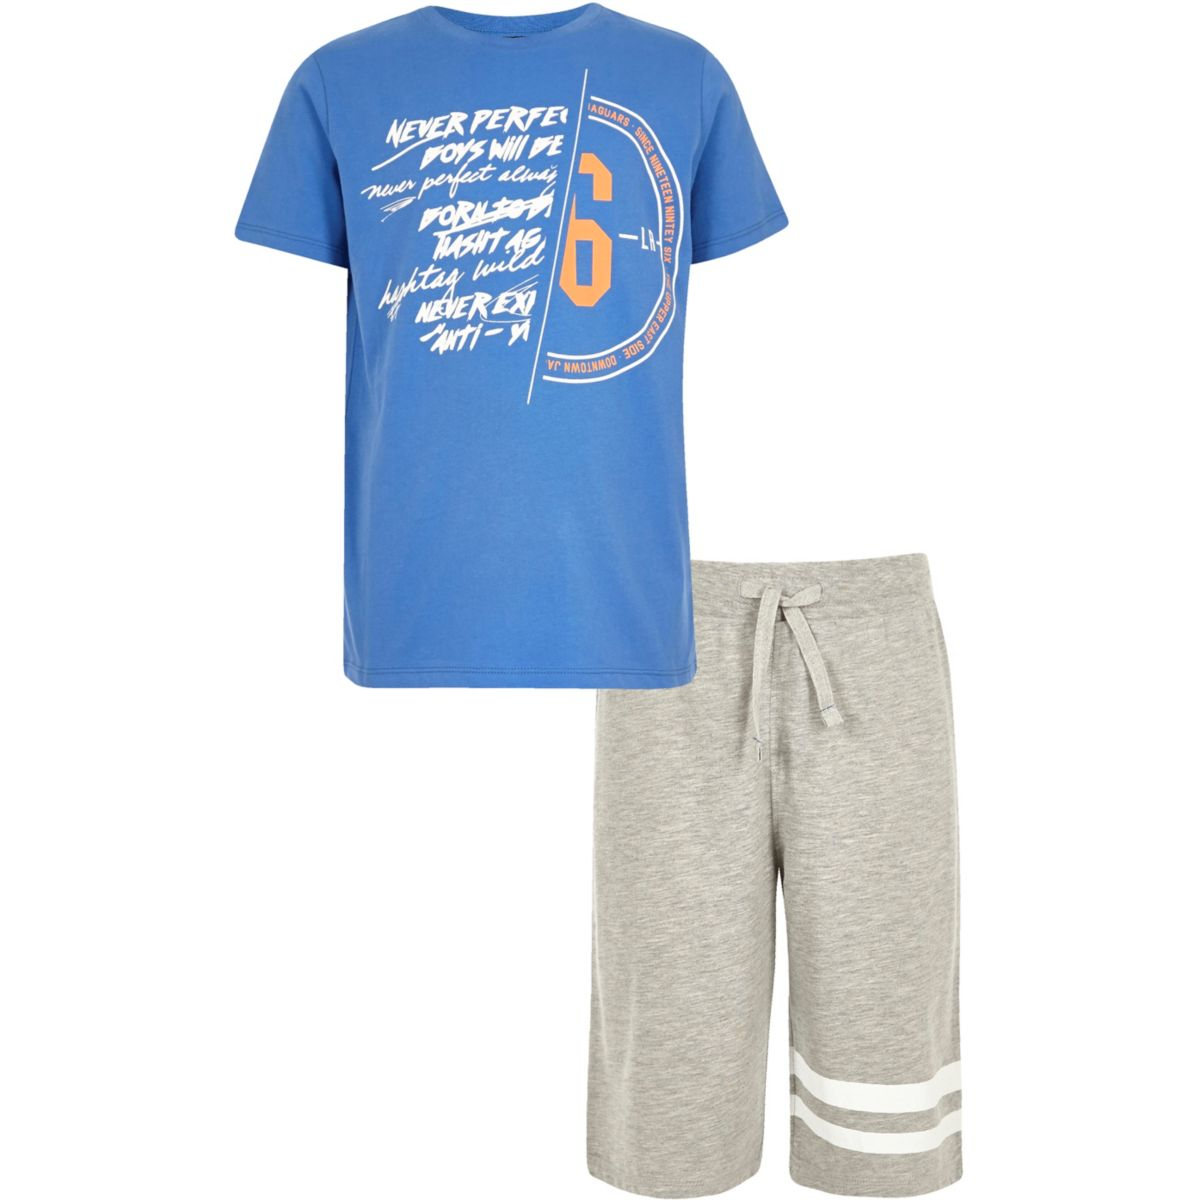 Boys blue spliced print pajama set